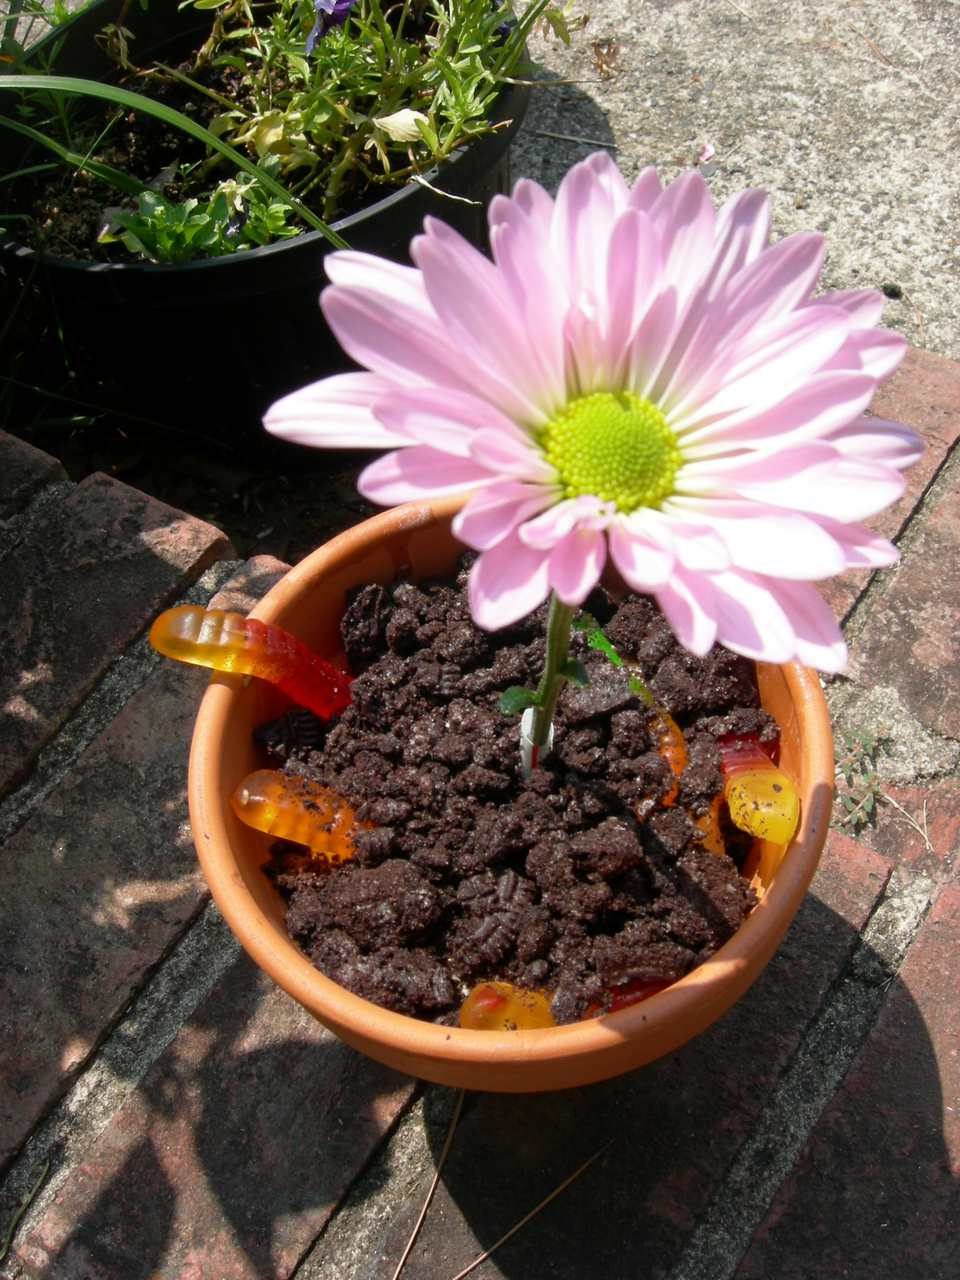 A pot of dirt cake with a fake plastic flower